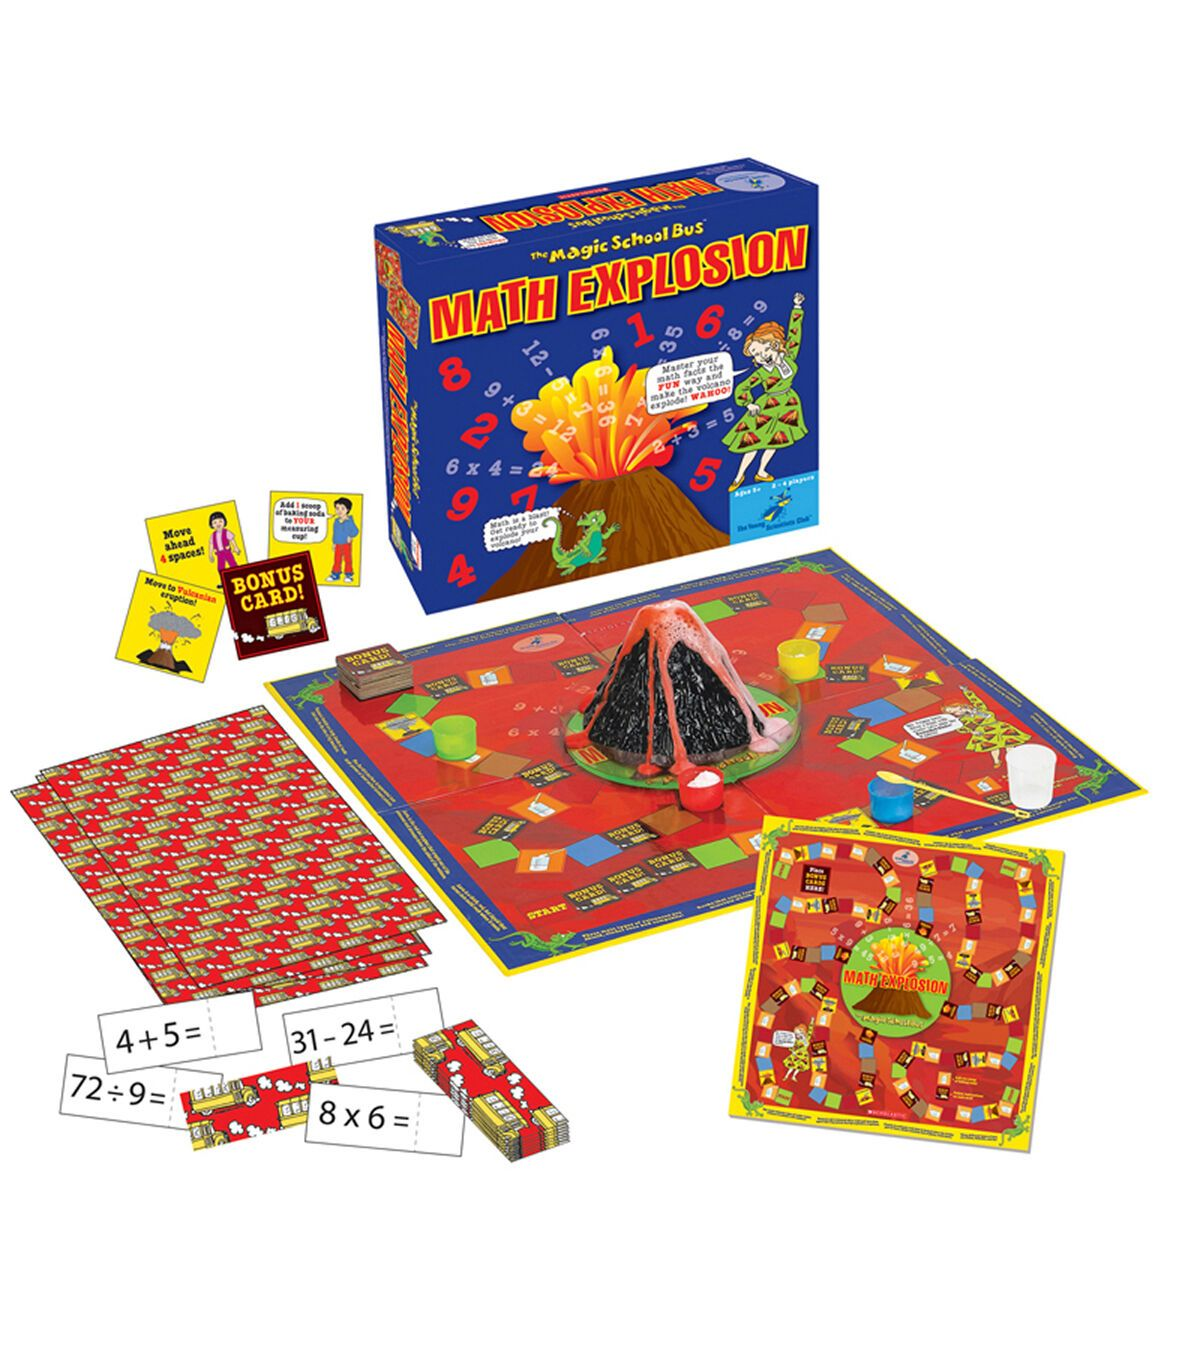 The Magic School Bus Math Explosion Game In